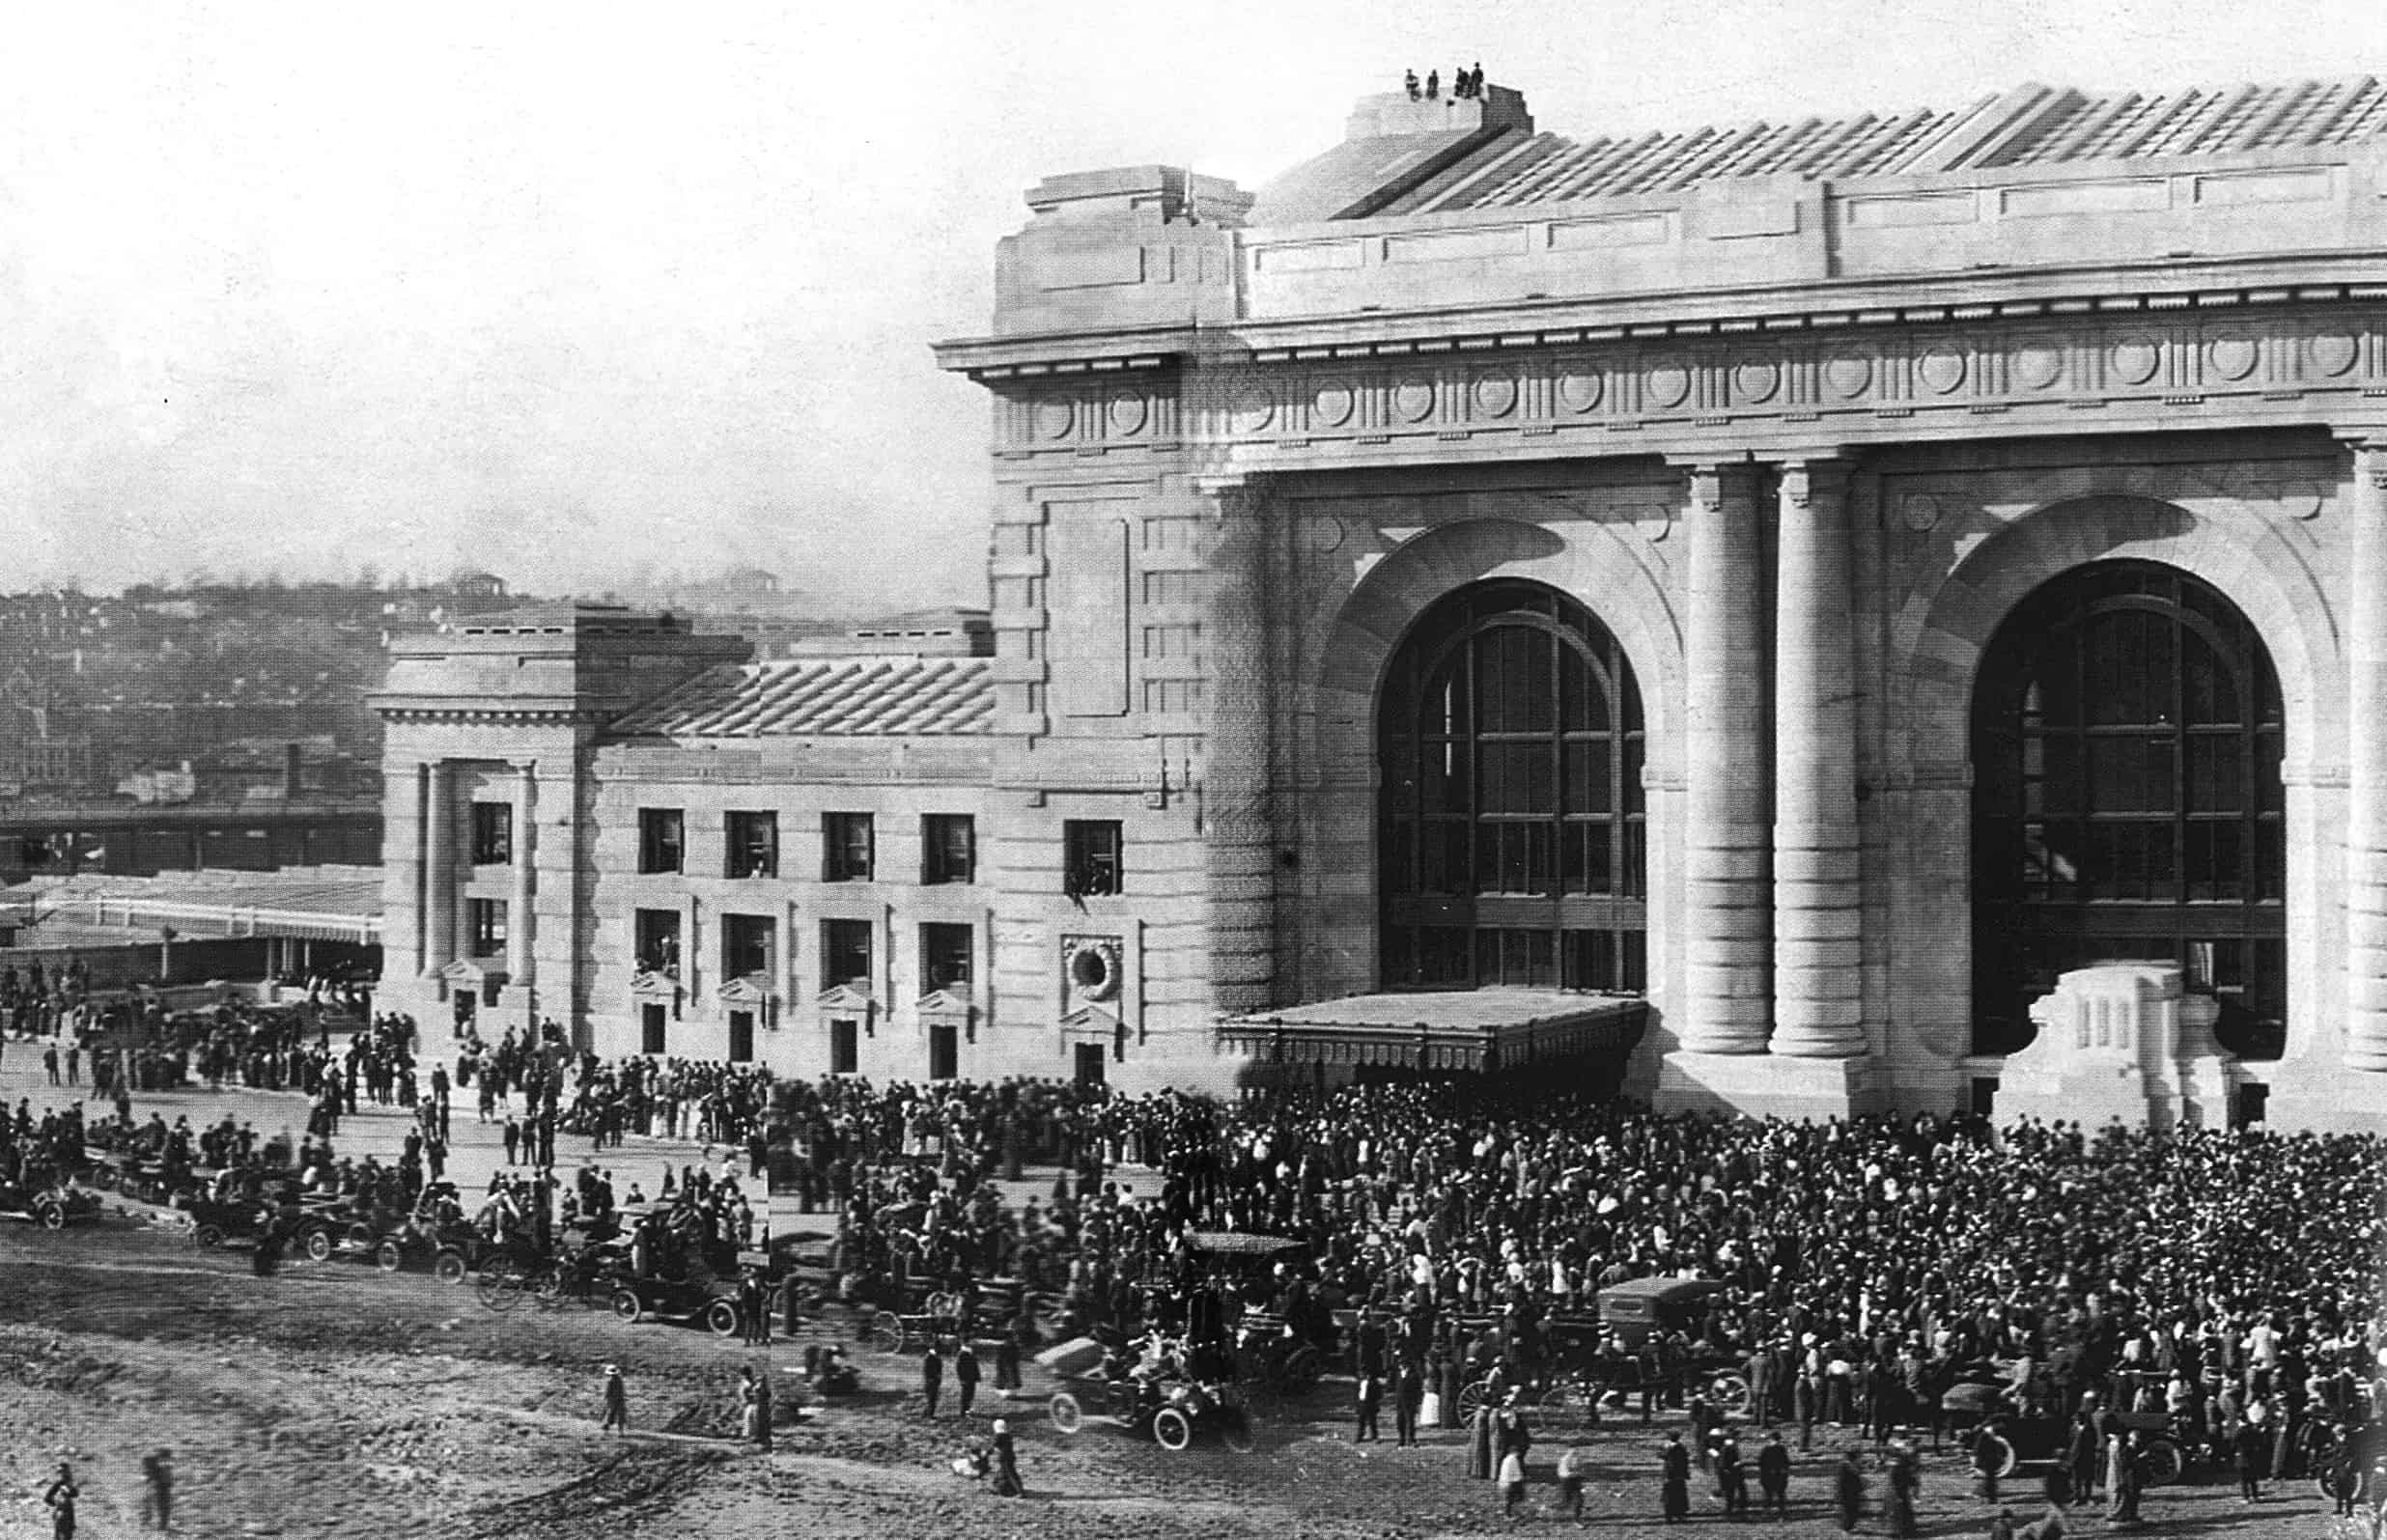 Kansas City's Union Station is pictured in 1914.